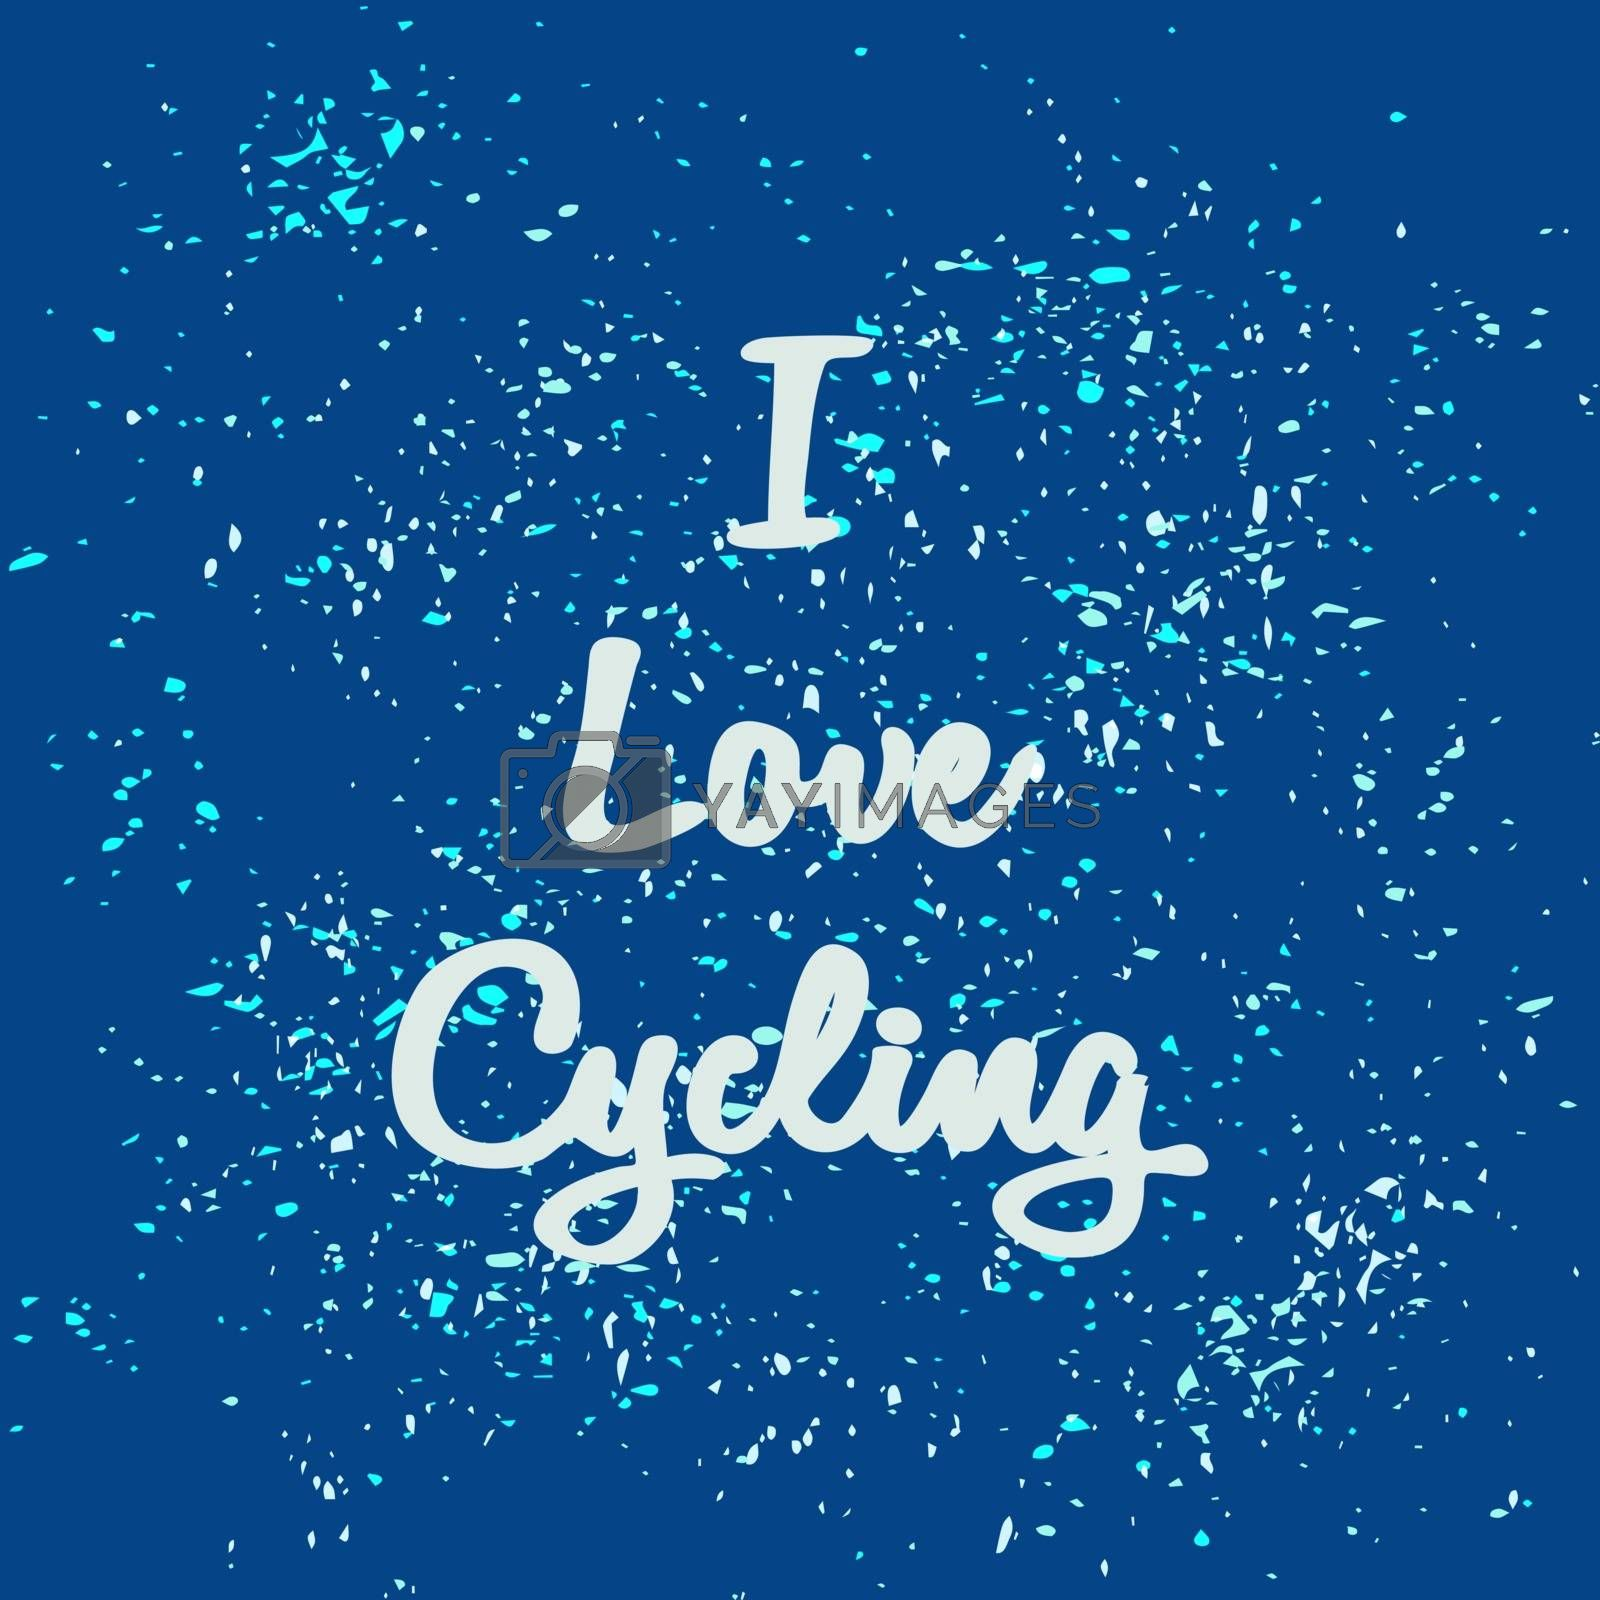 White text - I Love Cycling. Blue abstract background with scattering particles. Theme of sport, cycling activities. Design idea for cycling competitions, tourism, outdoor recreation, website.